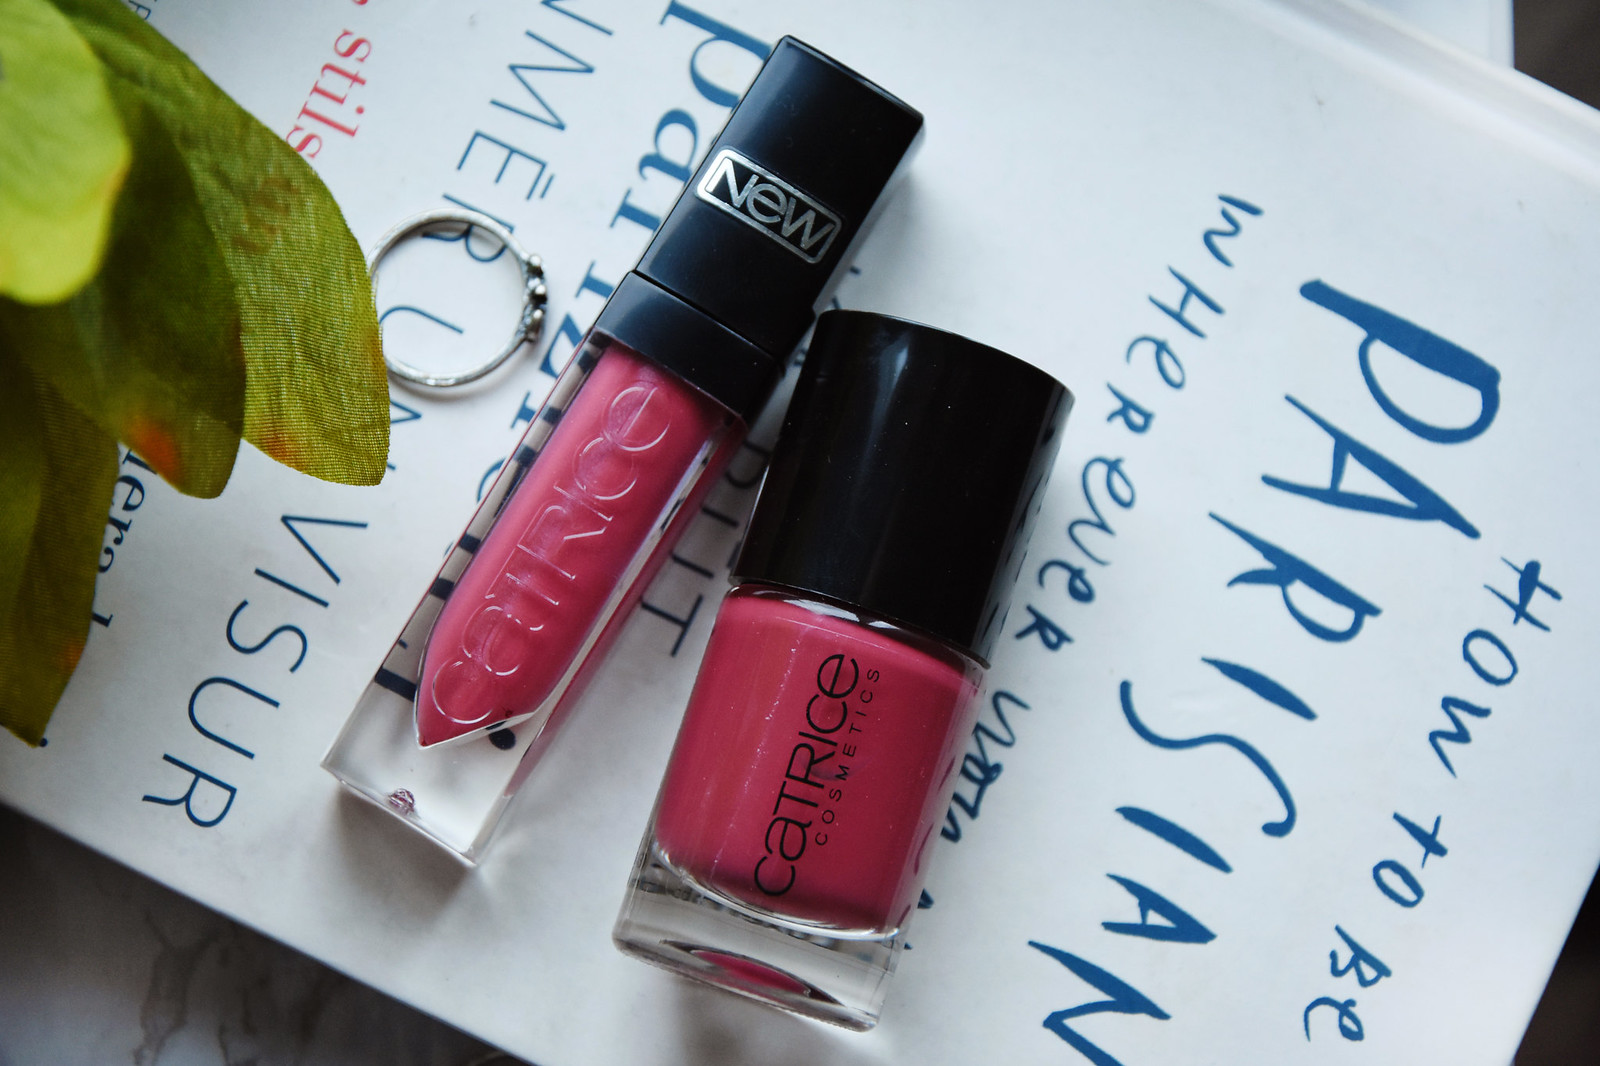 Catrice Shine appeal fluid lipstick and Ultimate nail lacquer review